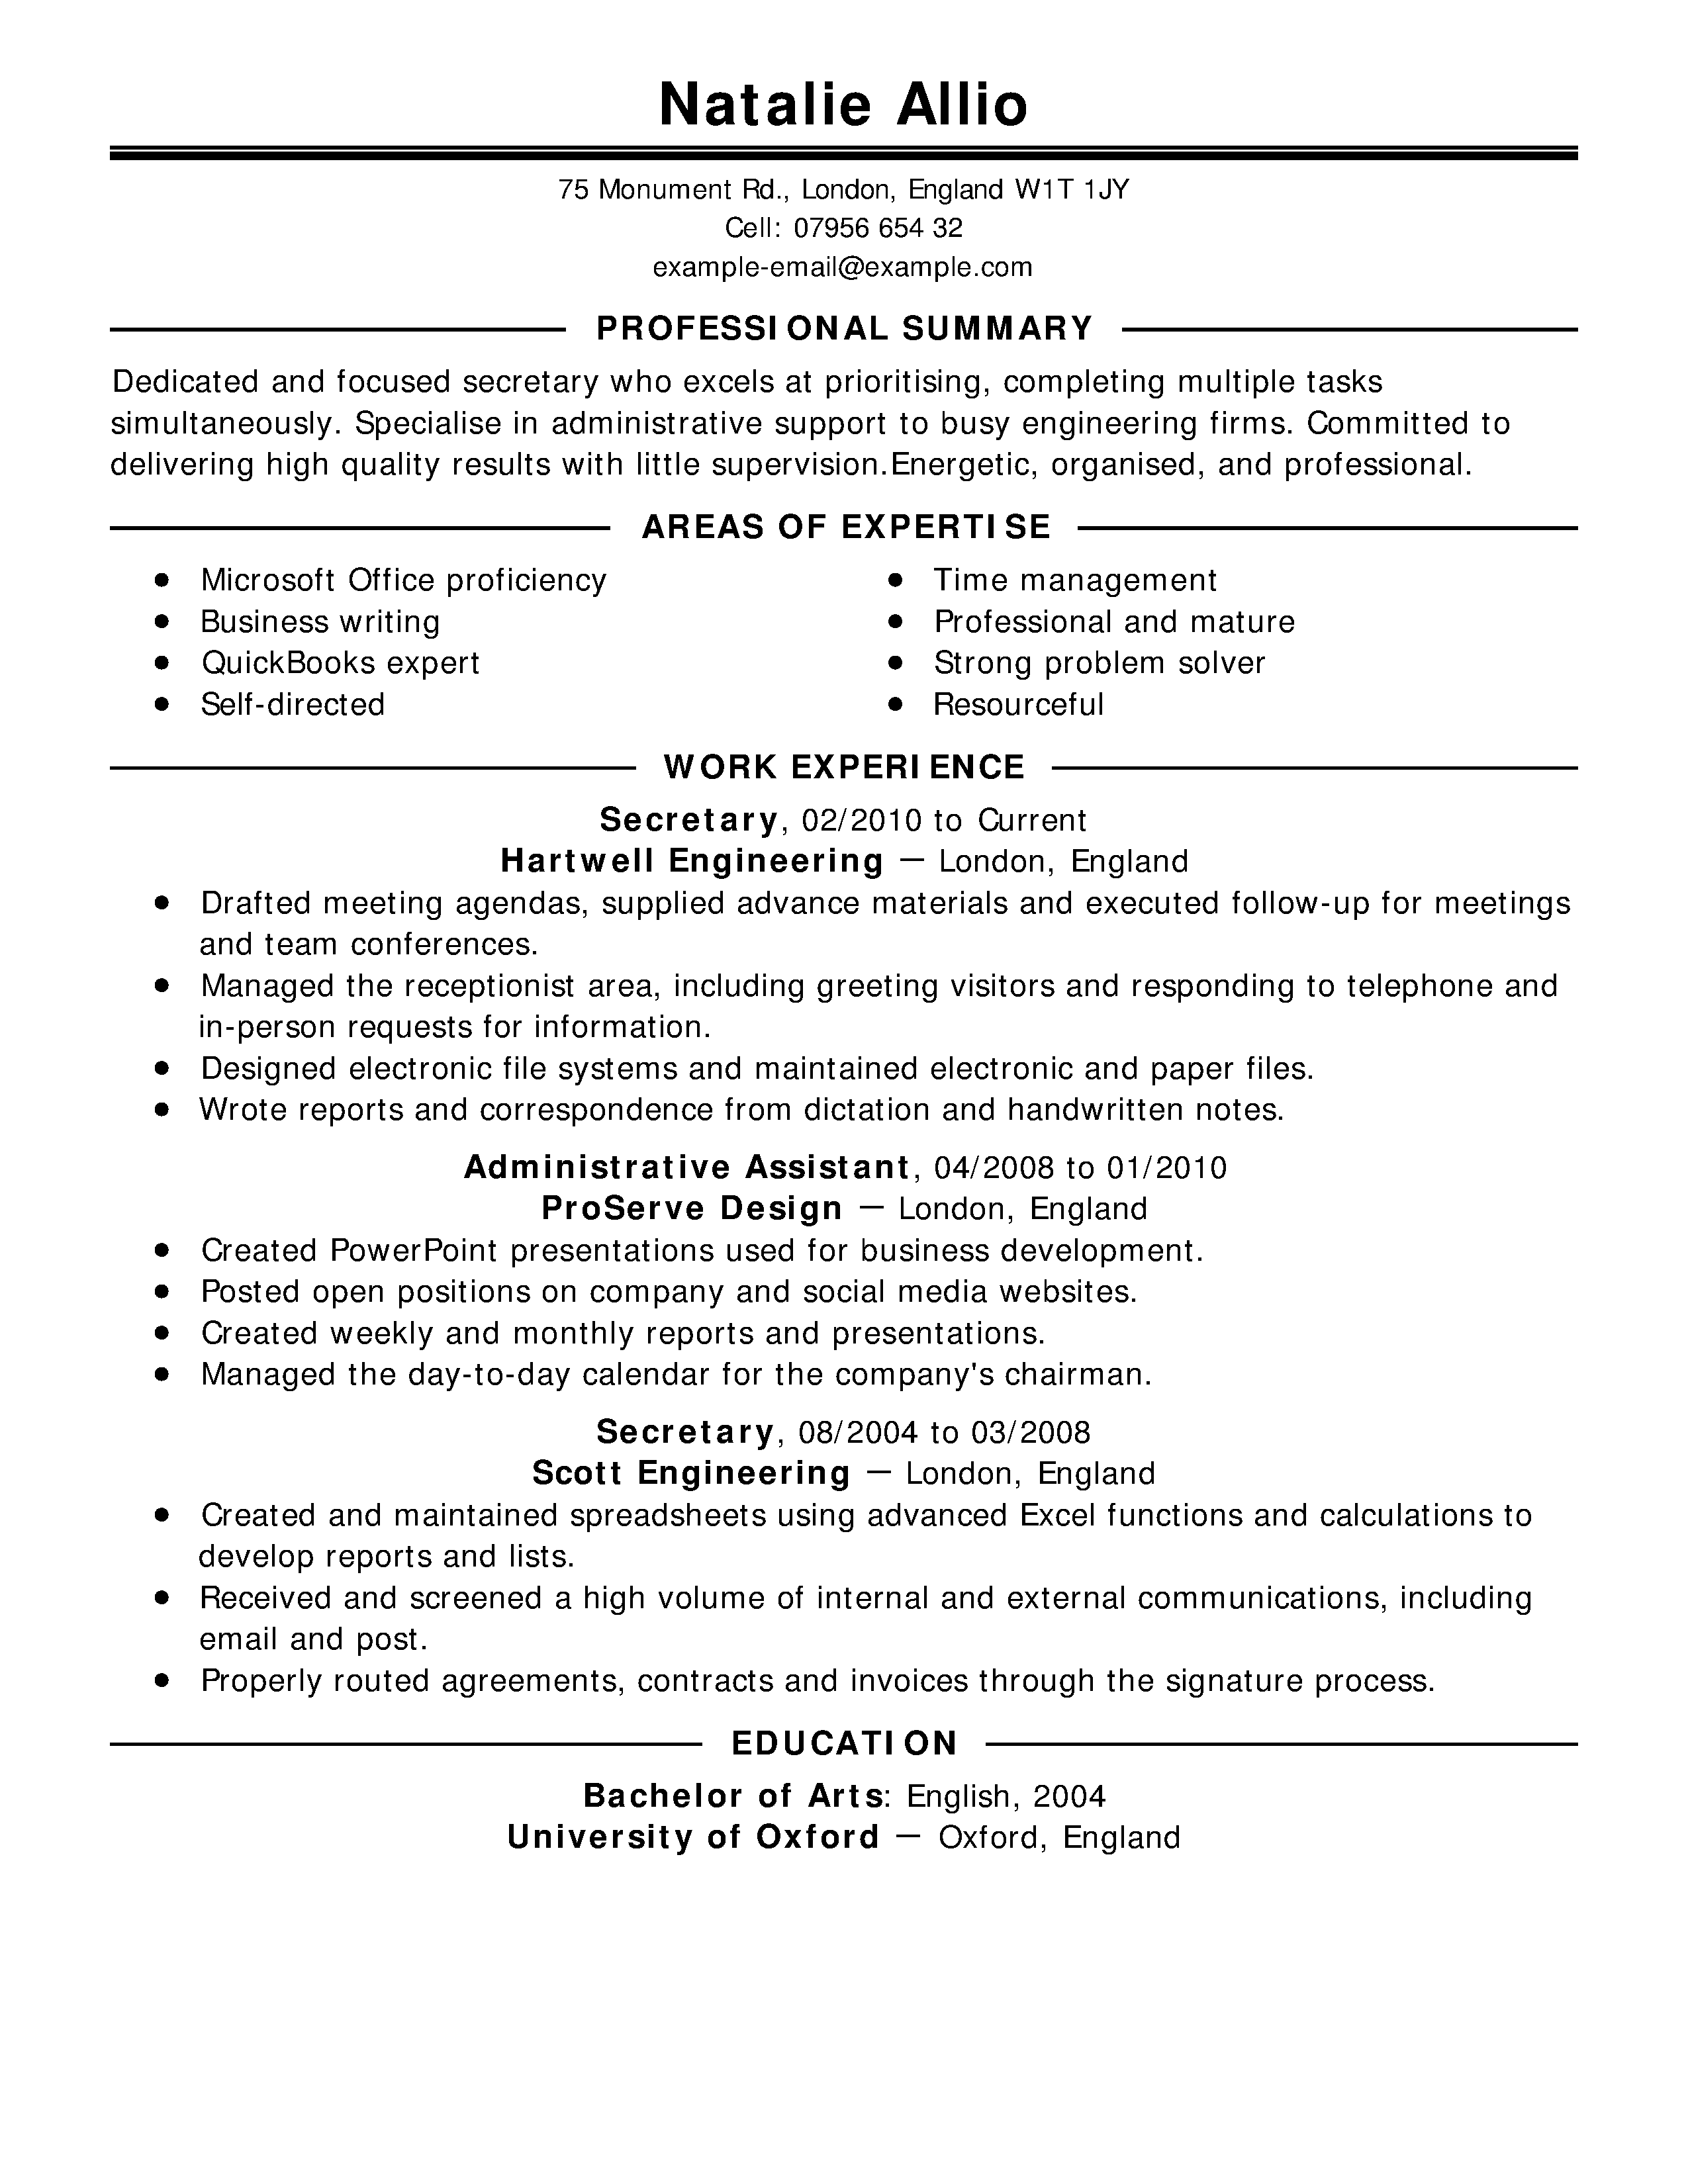 Psychologist Resume You Are Smart And Accomplished But Does Your Resume